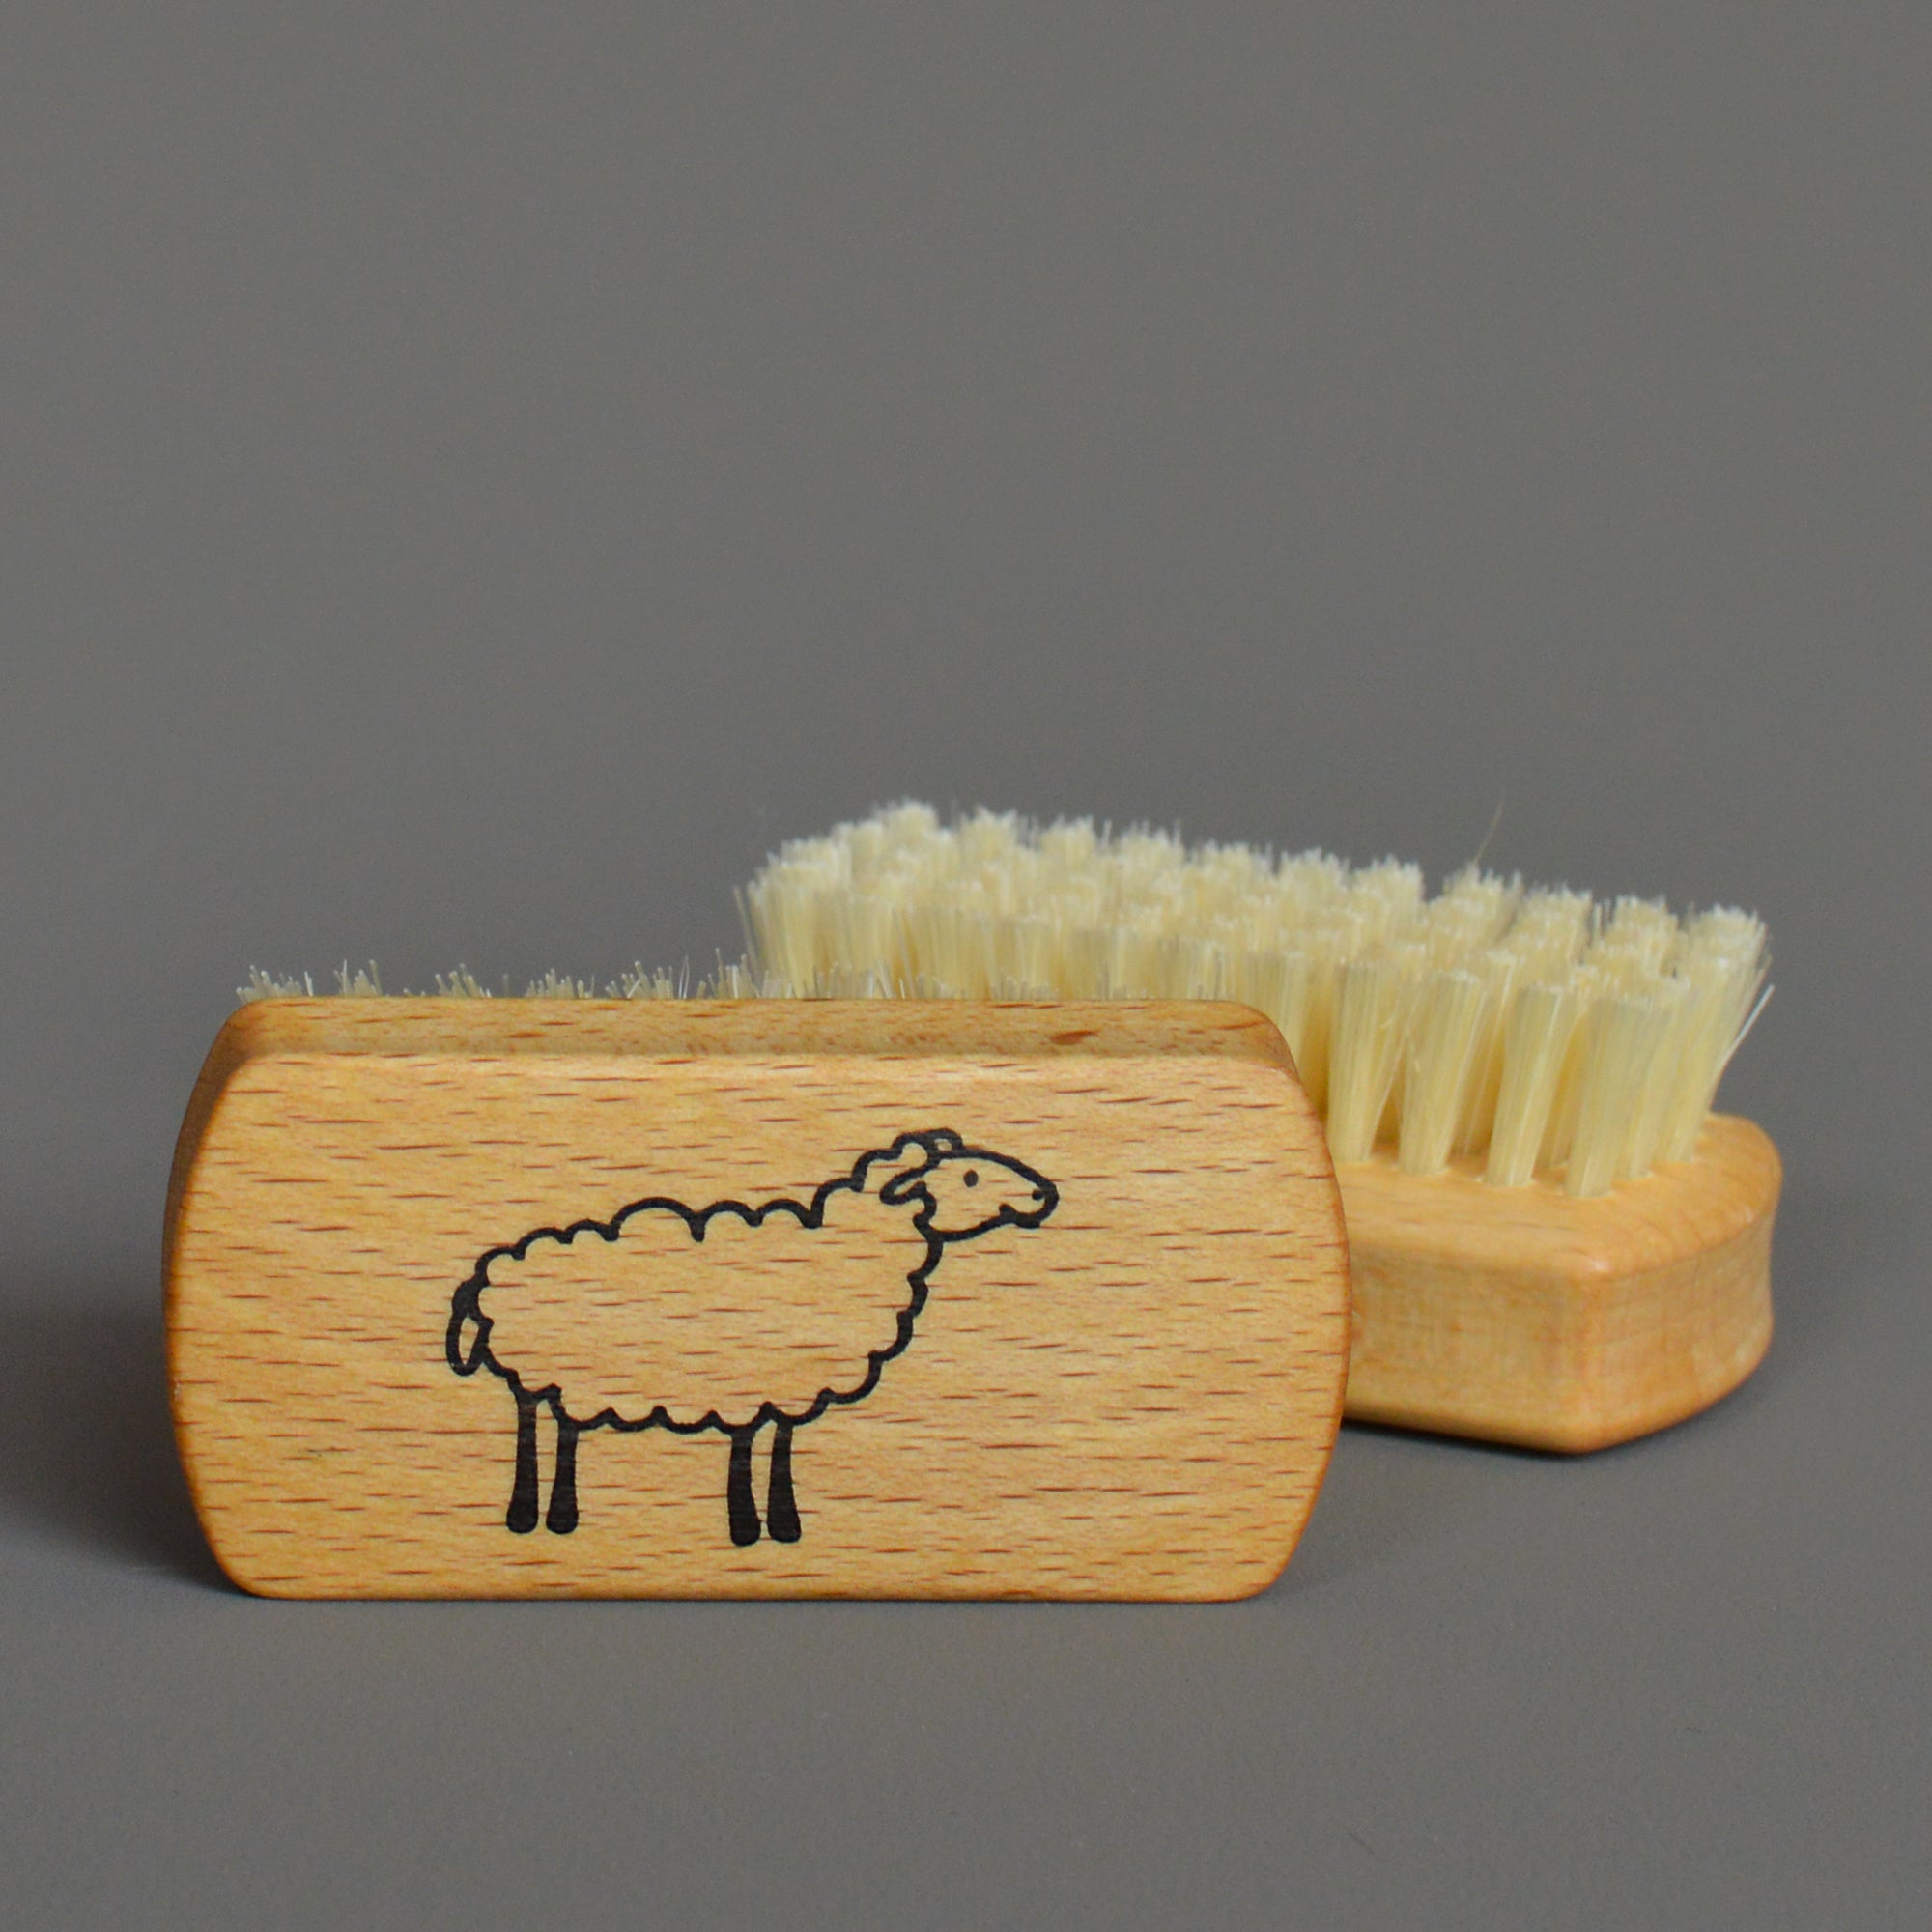 Nail Brush with Sheep by Redecker